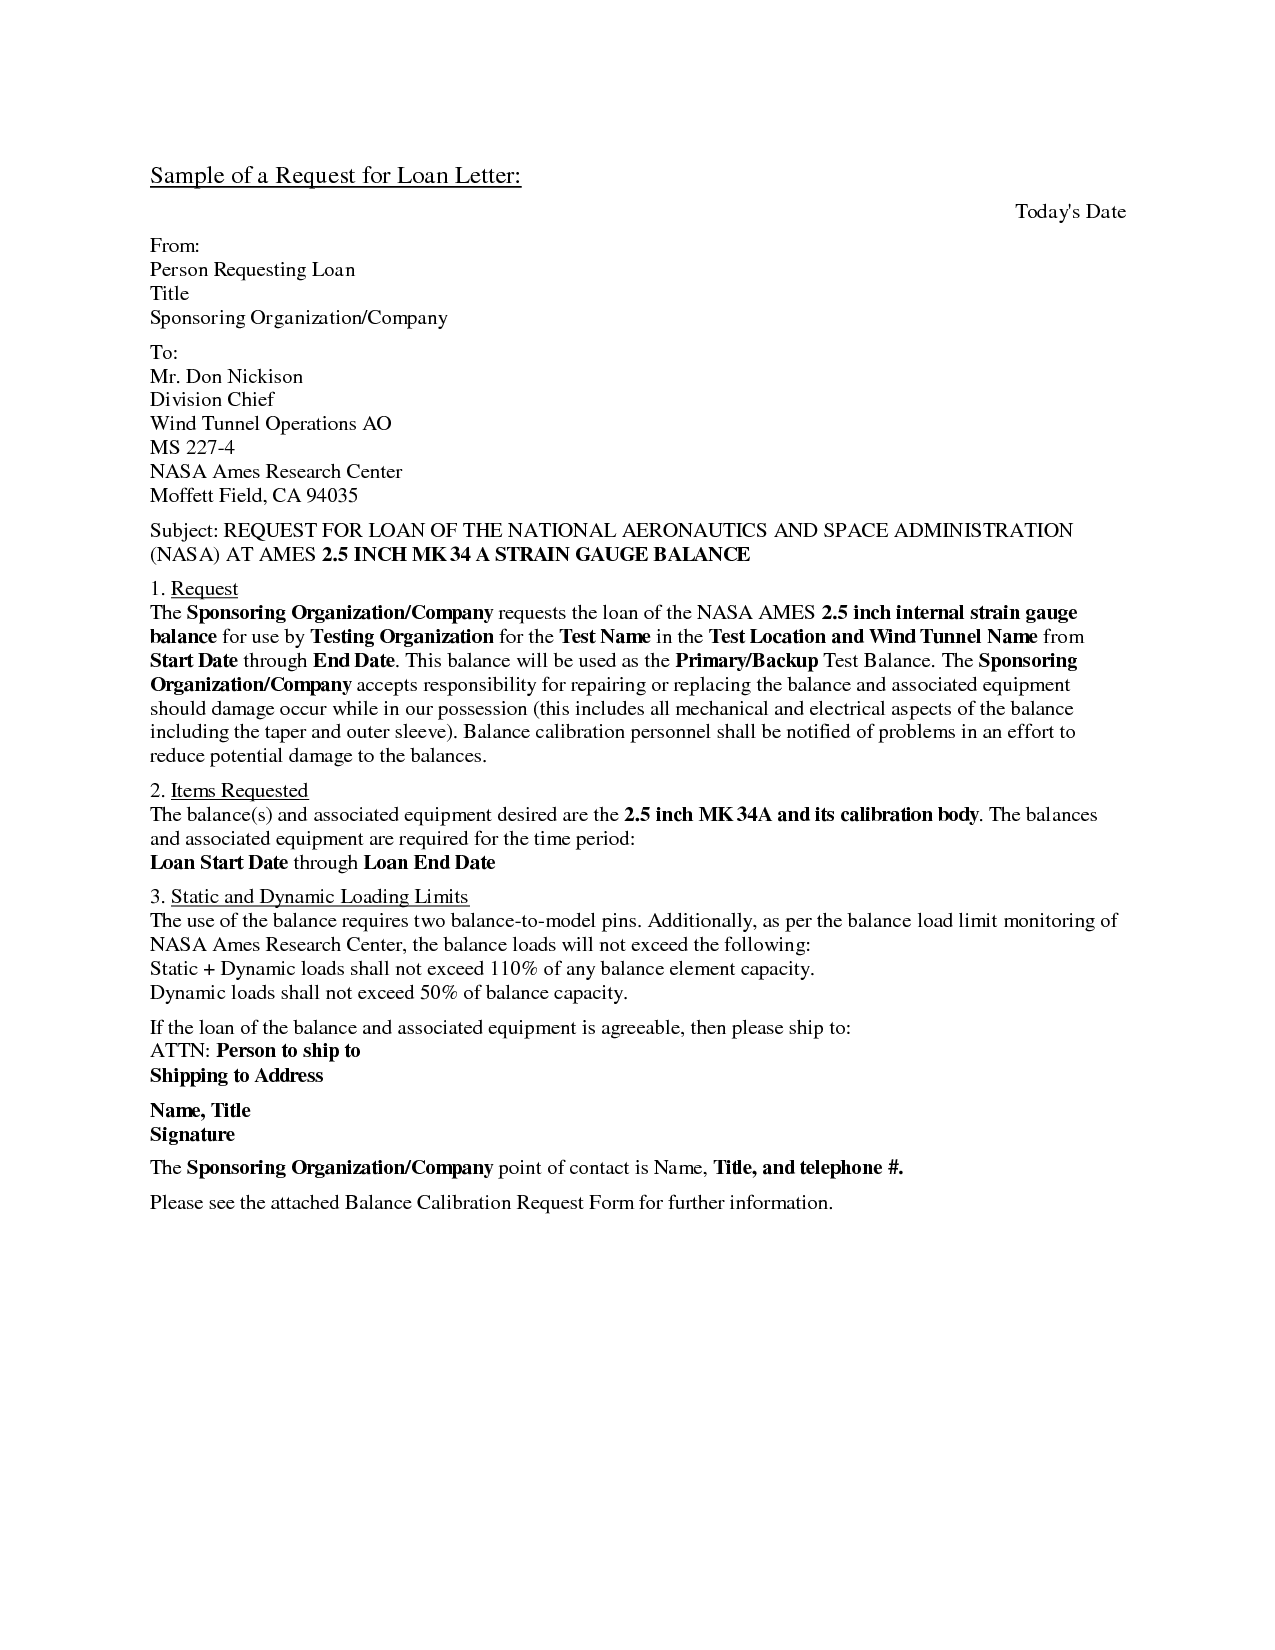 You Can See This Valid Letter Writing Format For Bank Exams At Valid Letter Writing Format For Ban Application Letters Bank Statement Application Letter Sample